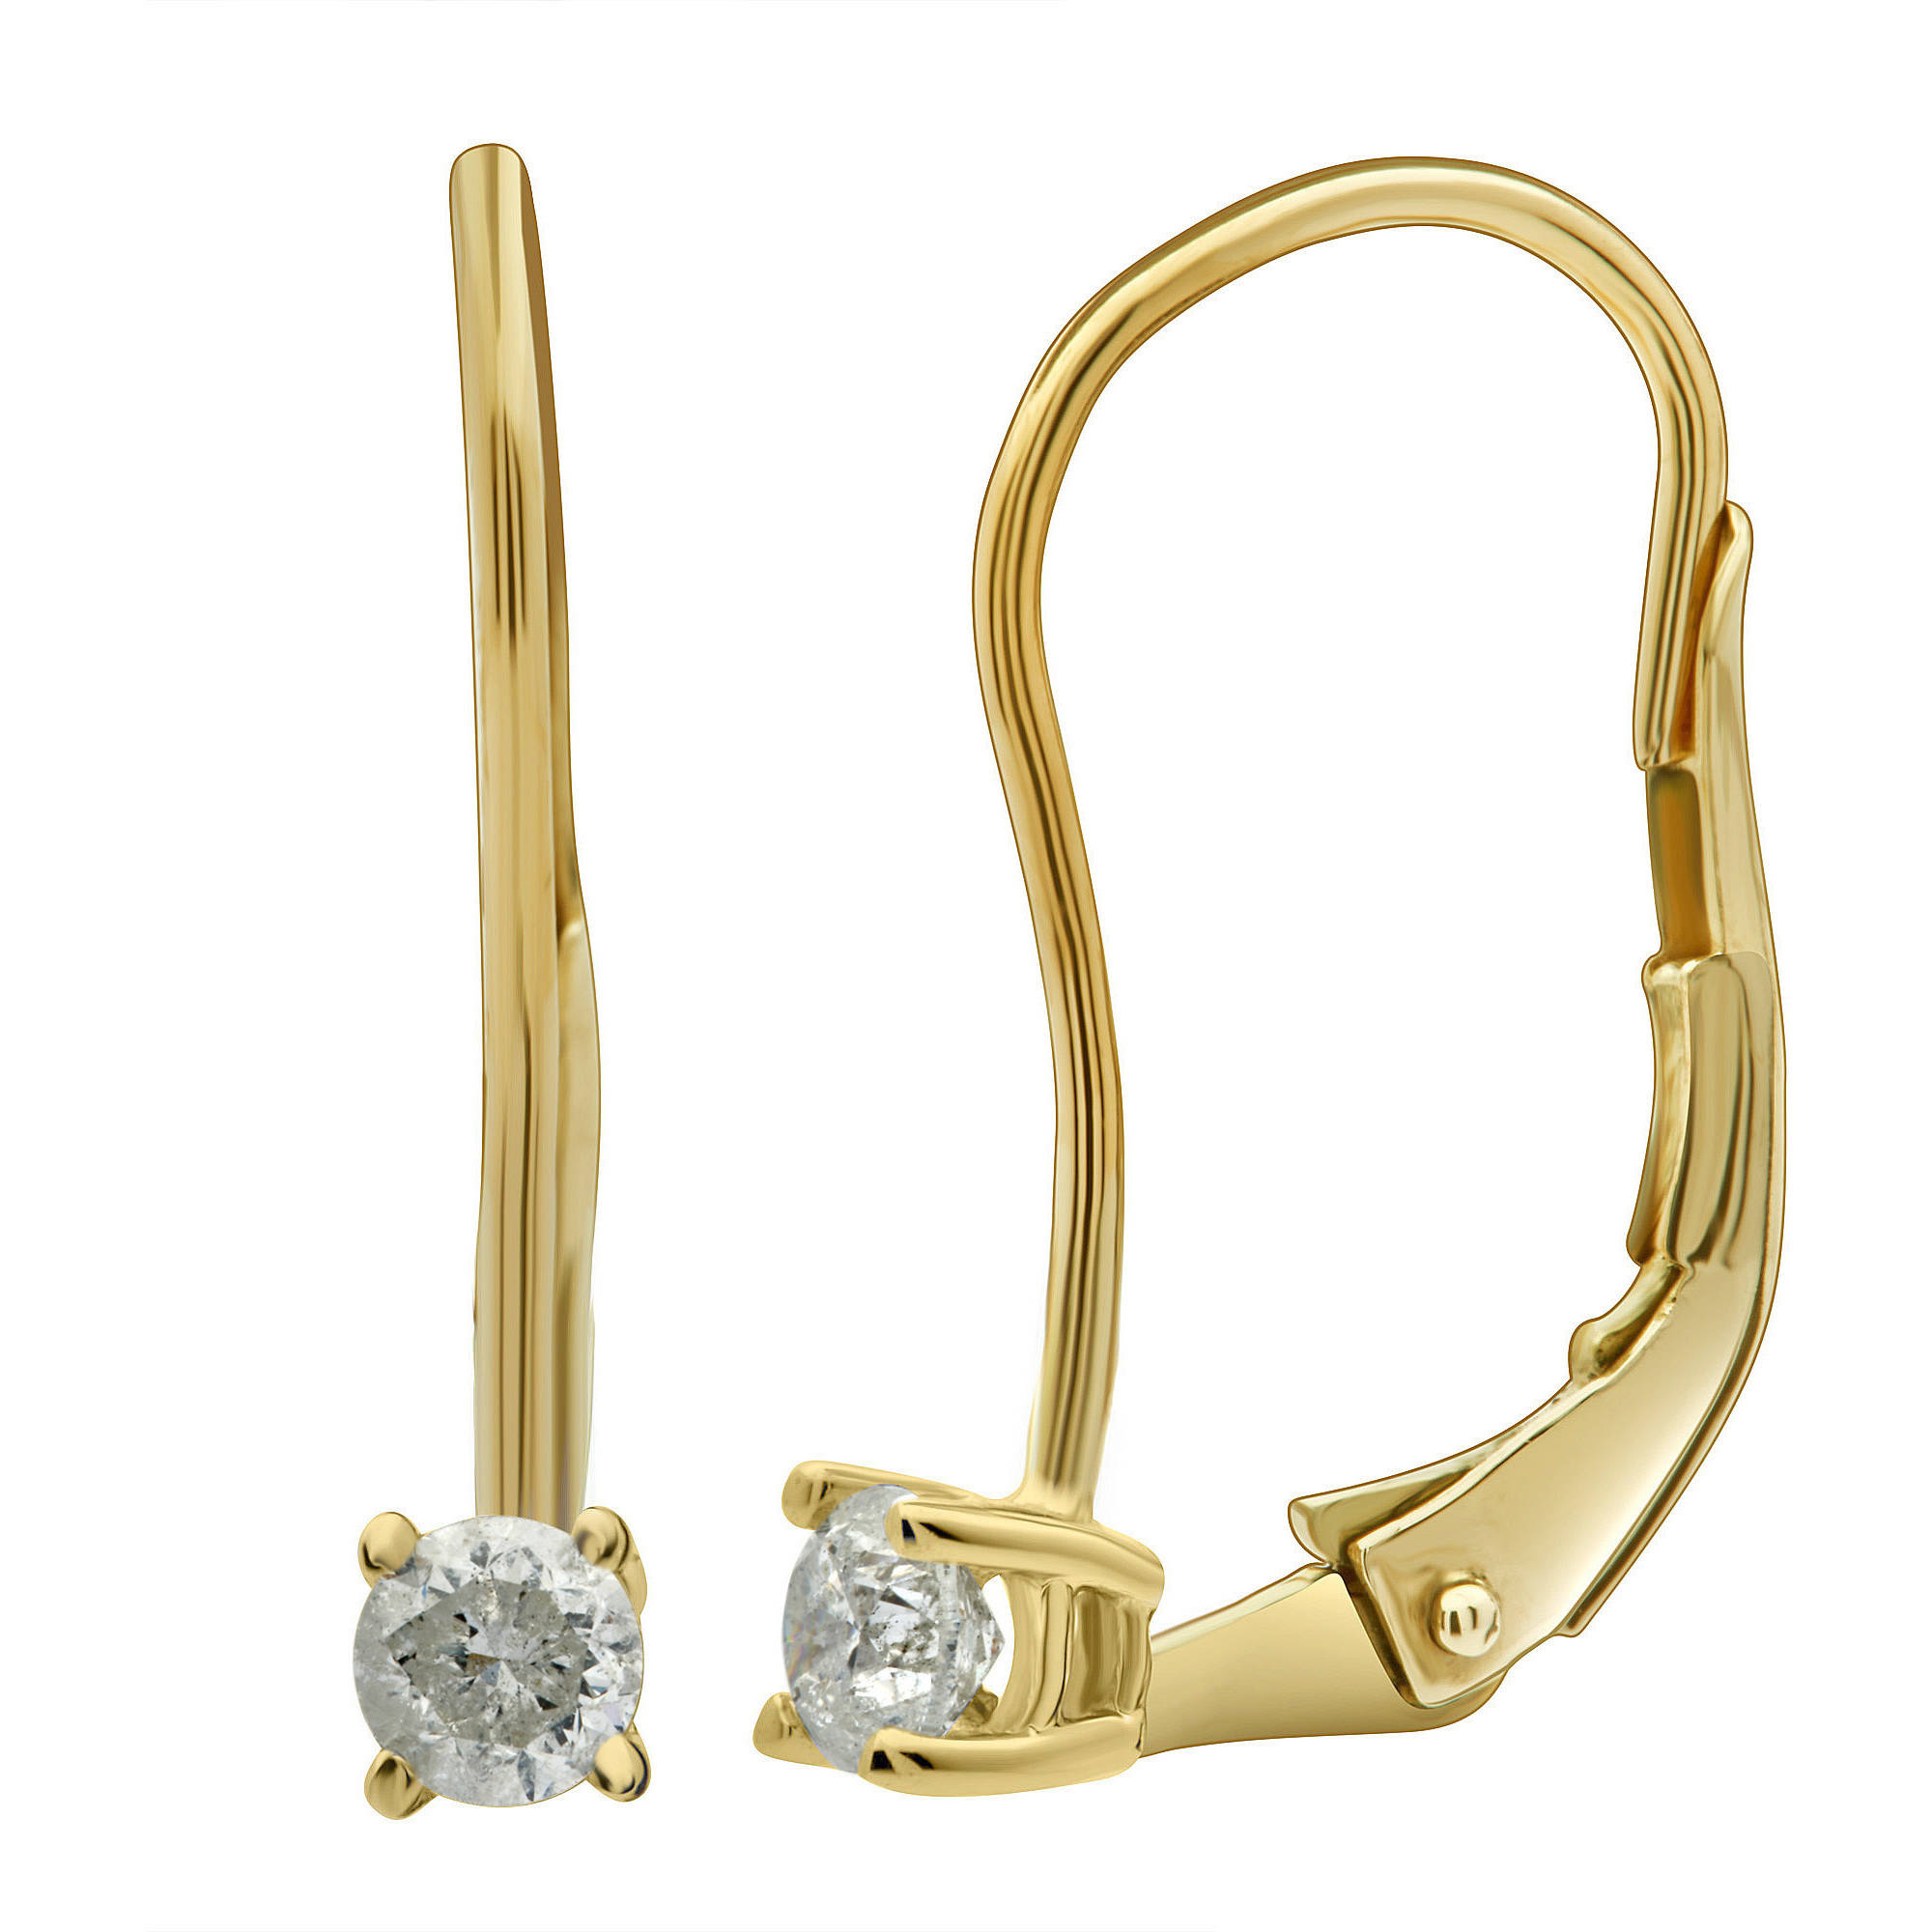 1/4 Carat T.W. Round Diamond 14kt Yellow Gold Leverback Stud Earrings with Gift Box, IGL Certified